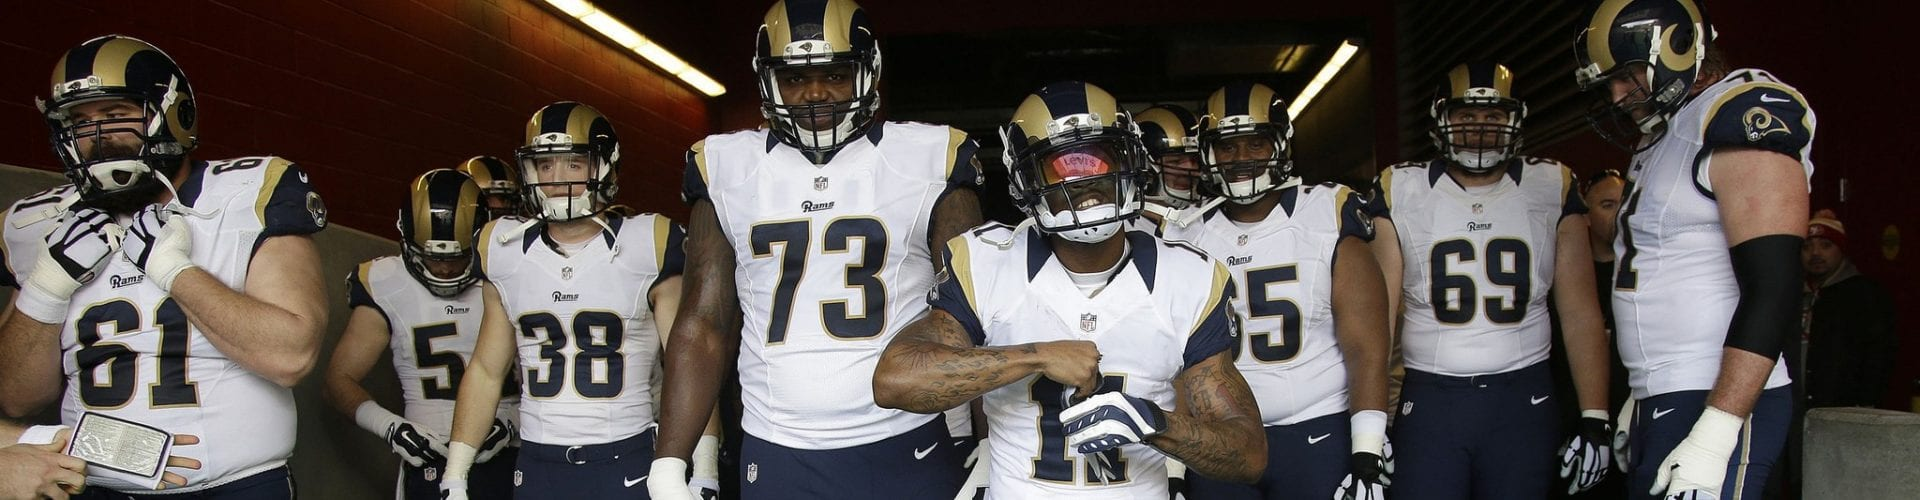 Patriots, Rams Take Over Tuesday Best-Selling Events